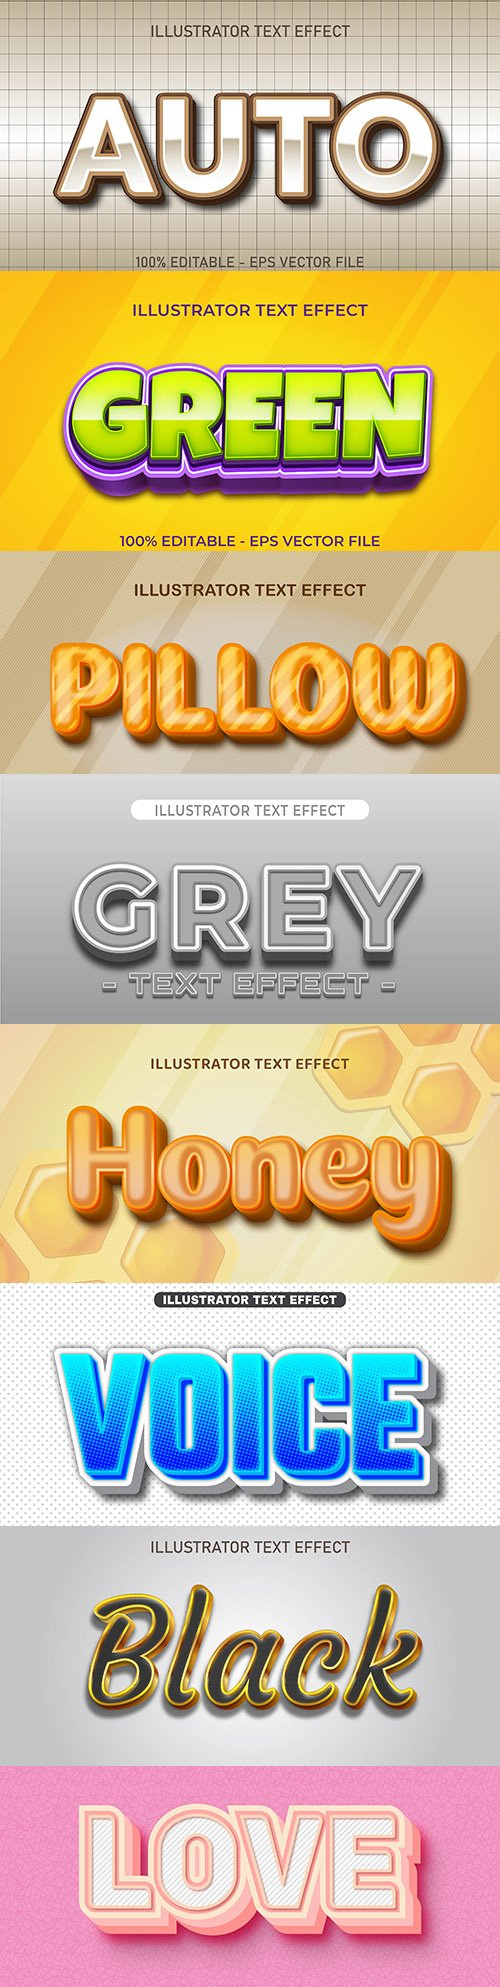 Editable font effect text collection illustration design 195